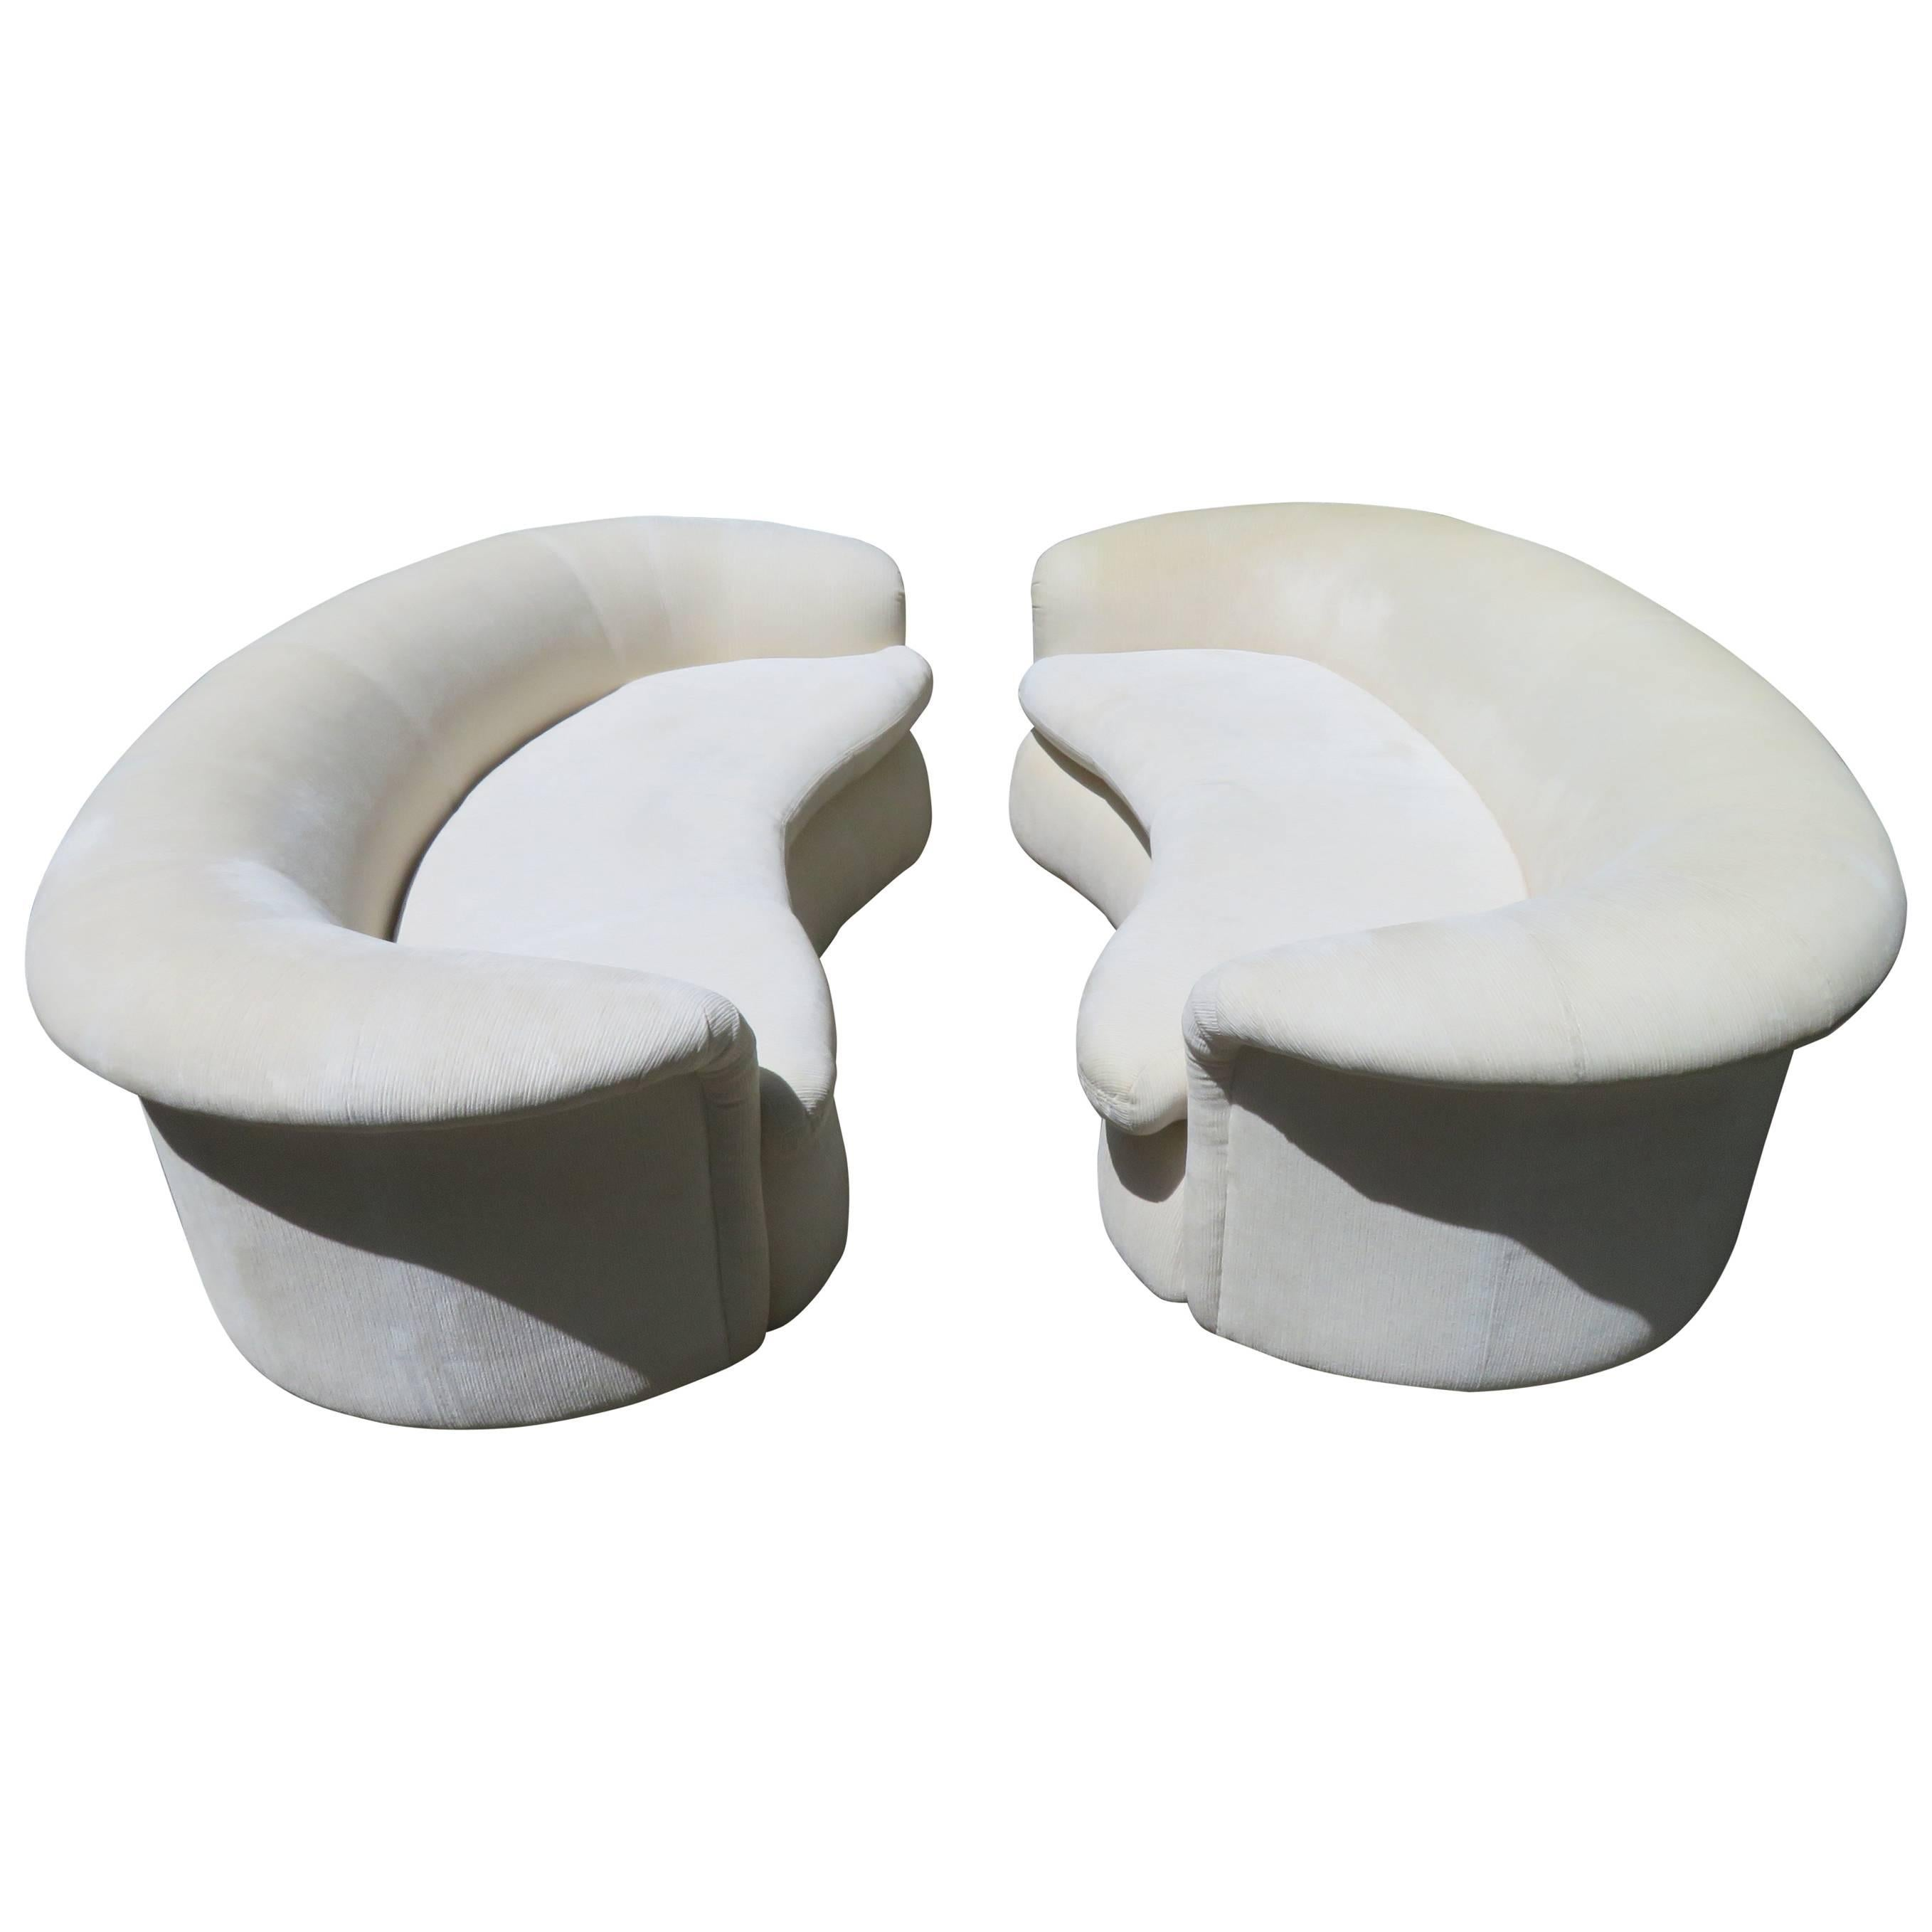 Lovely Pair of Kidney Shaped Curved Sofa Mid-Century Modern